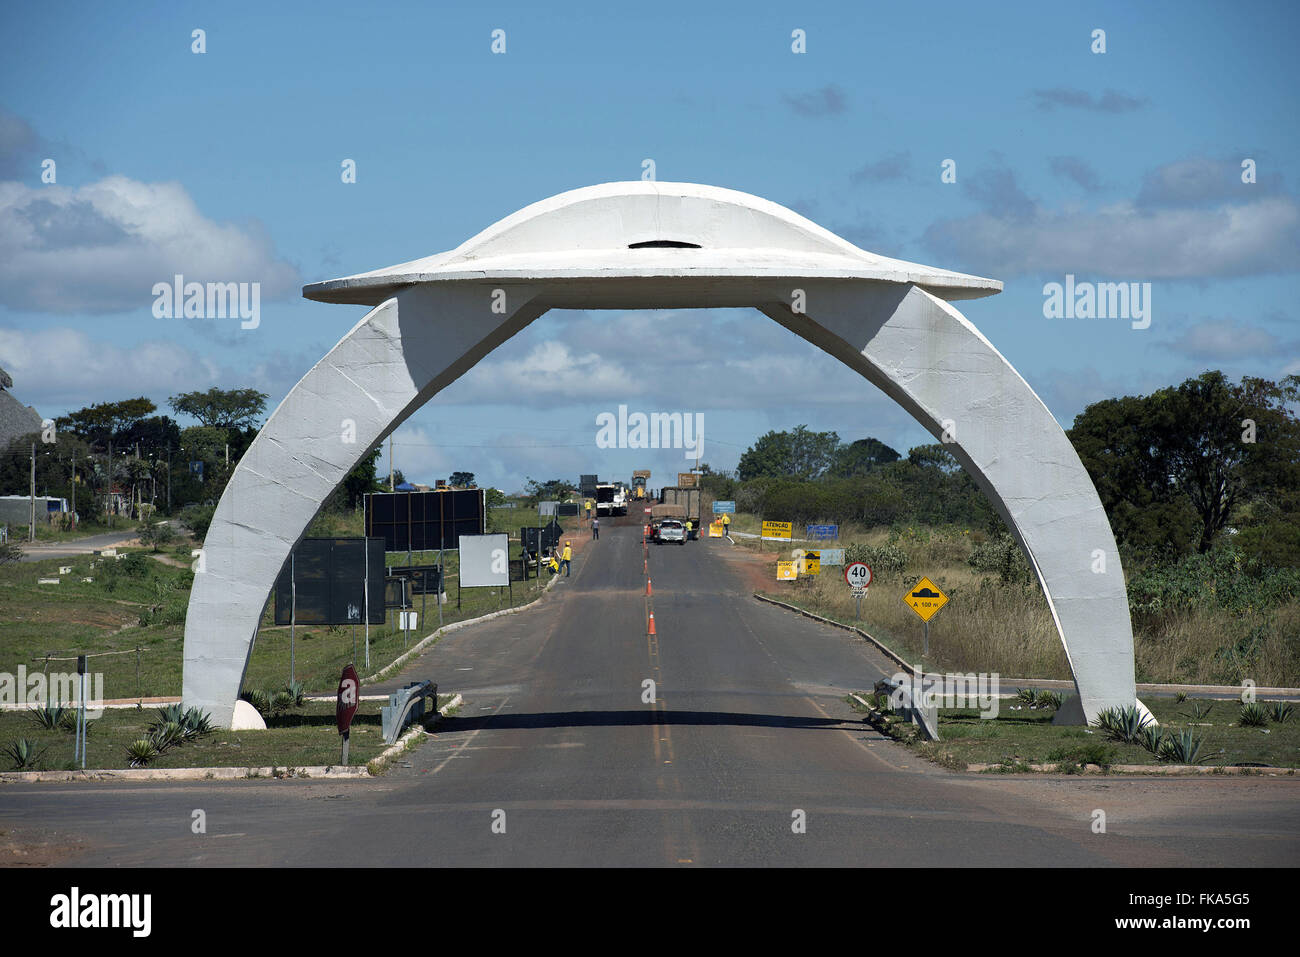 Gateway to the city in the shape of a flying saucer in the GO-118 in this section also called BR-010 - Stock Image